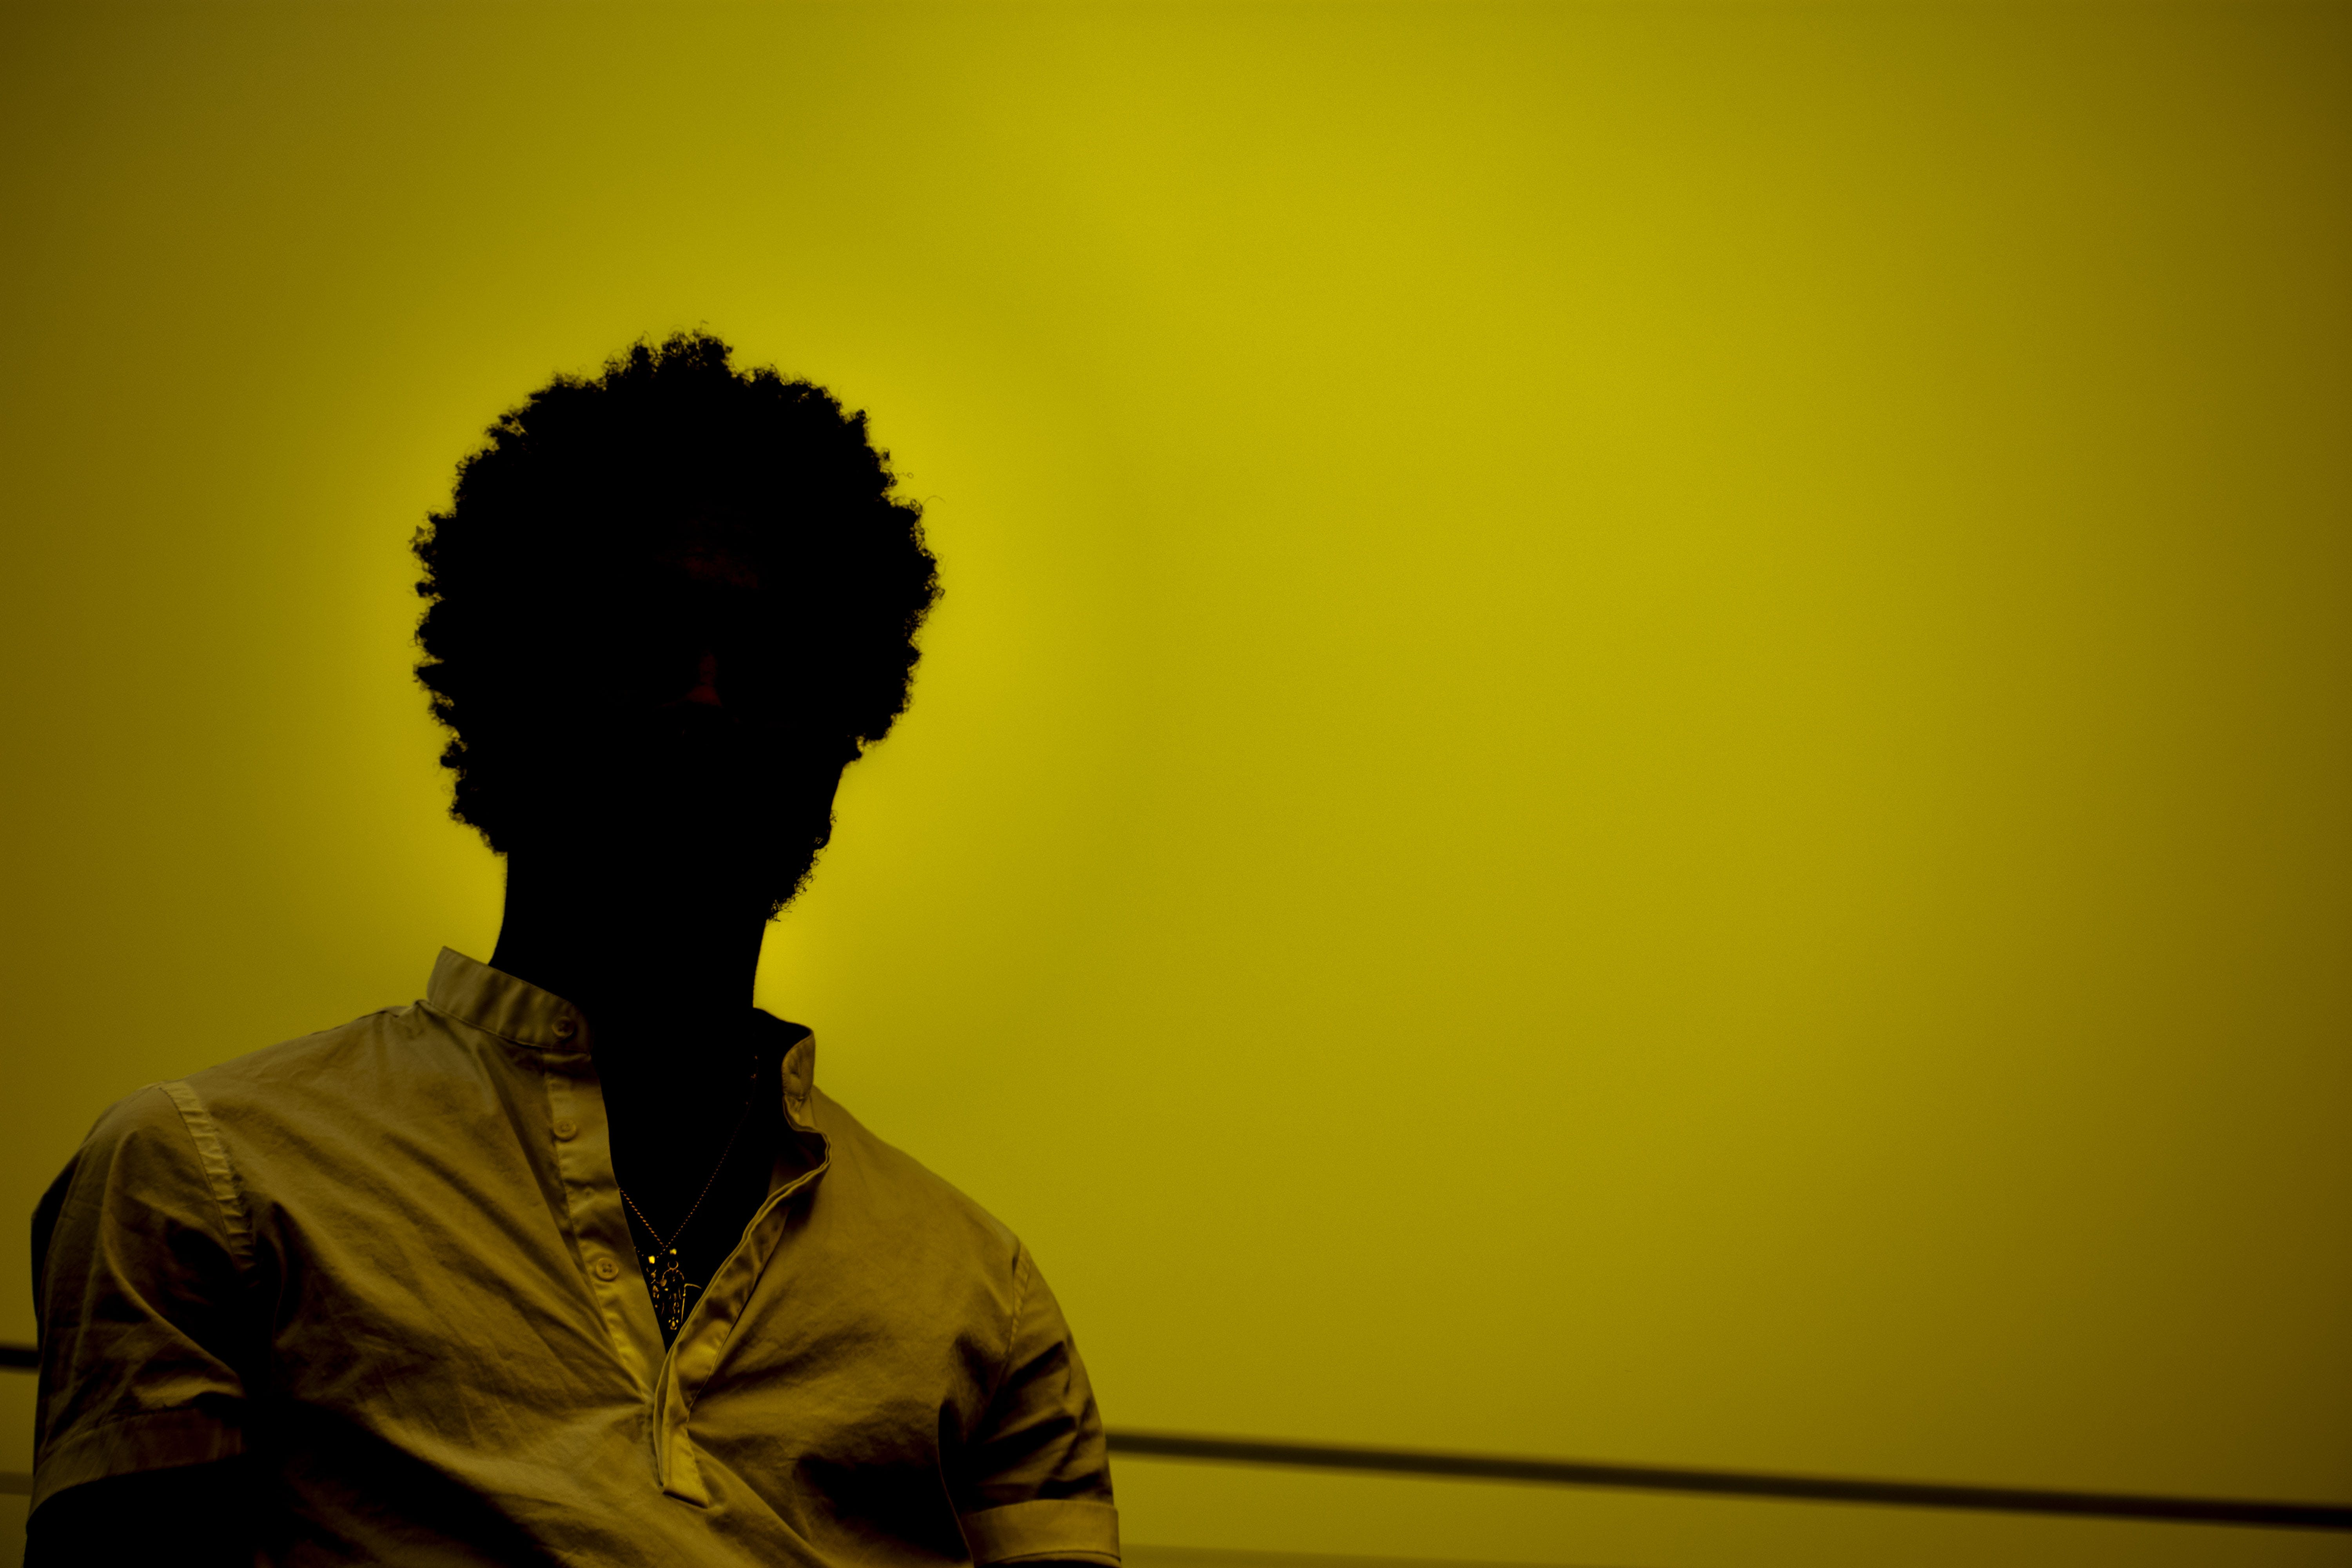 Free stock photo of lexscope afro samuari, lexscope gucci